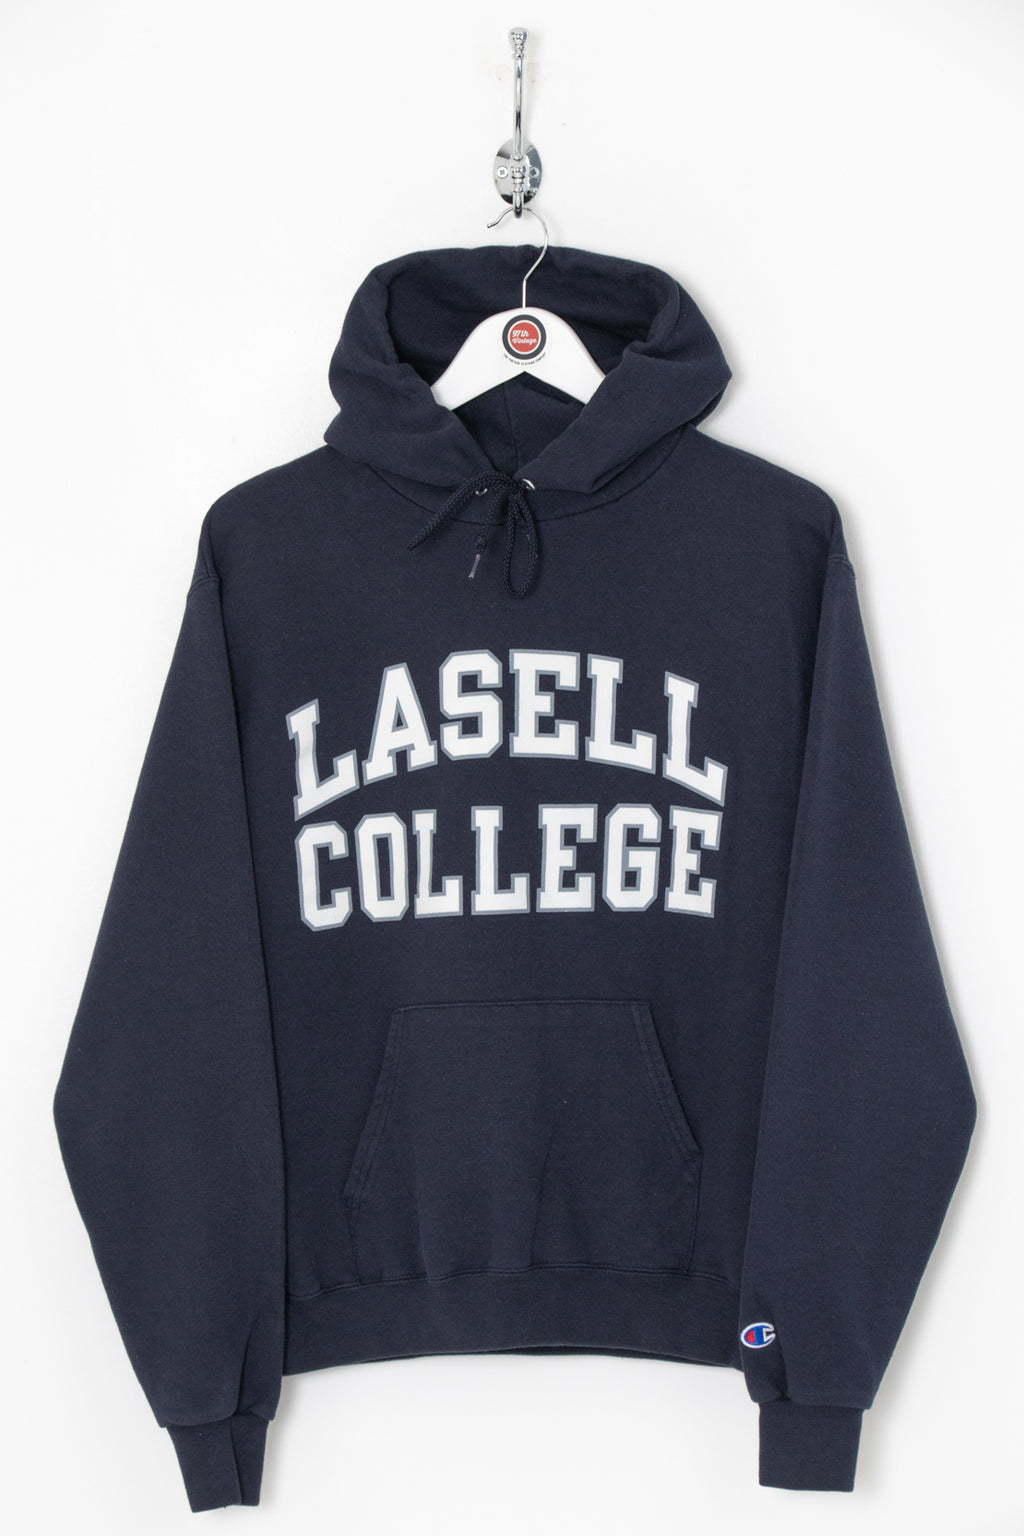 Women's Champion Lasell College Hoodie (M)